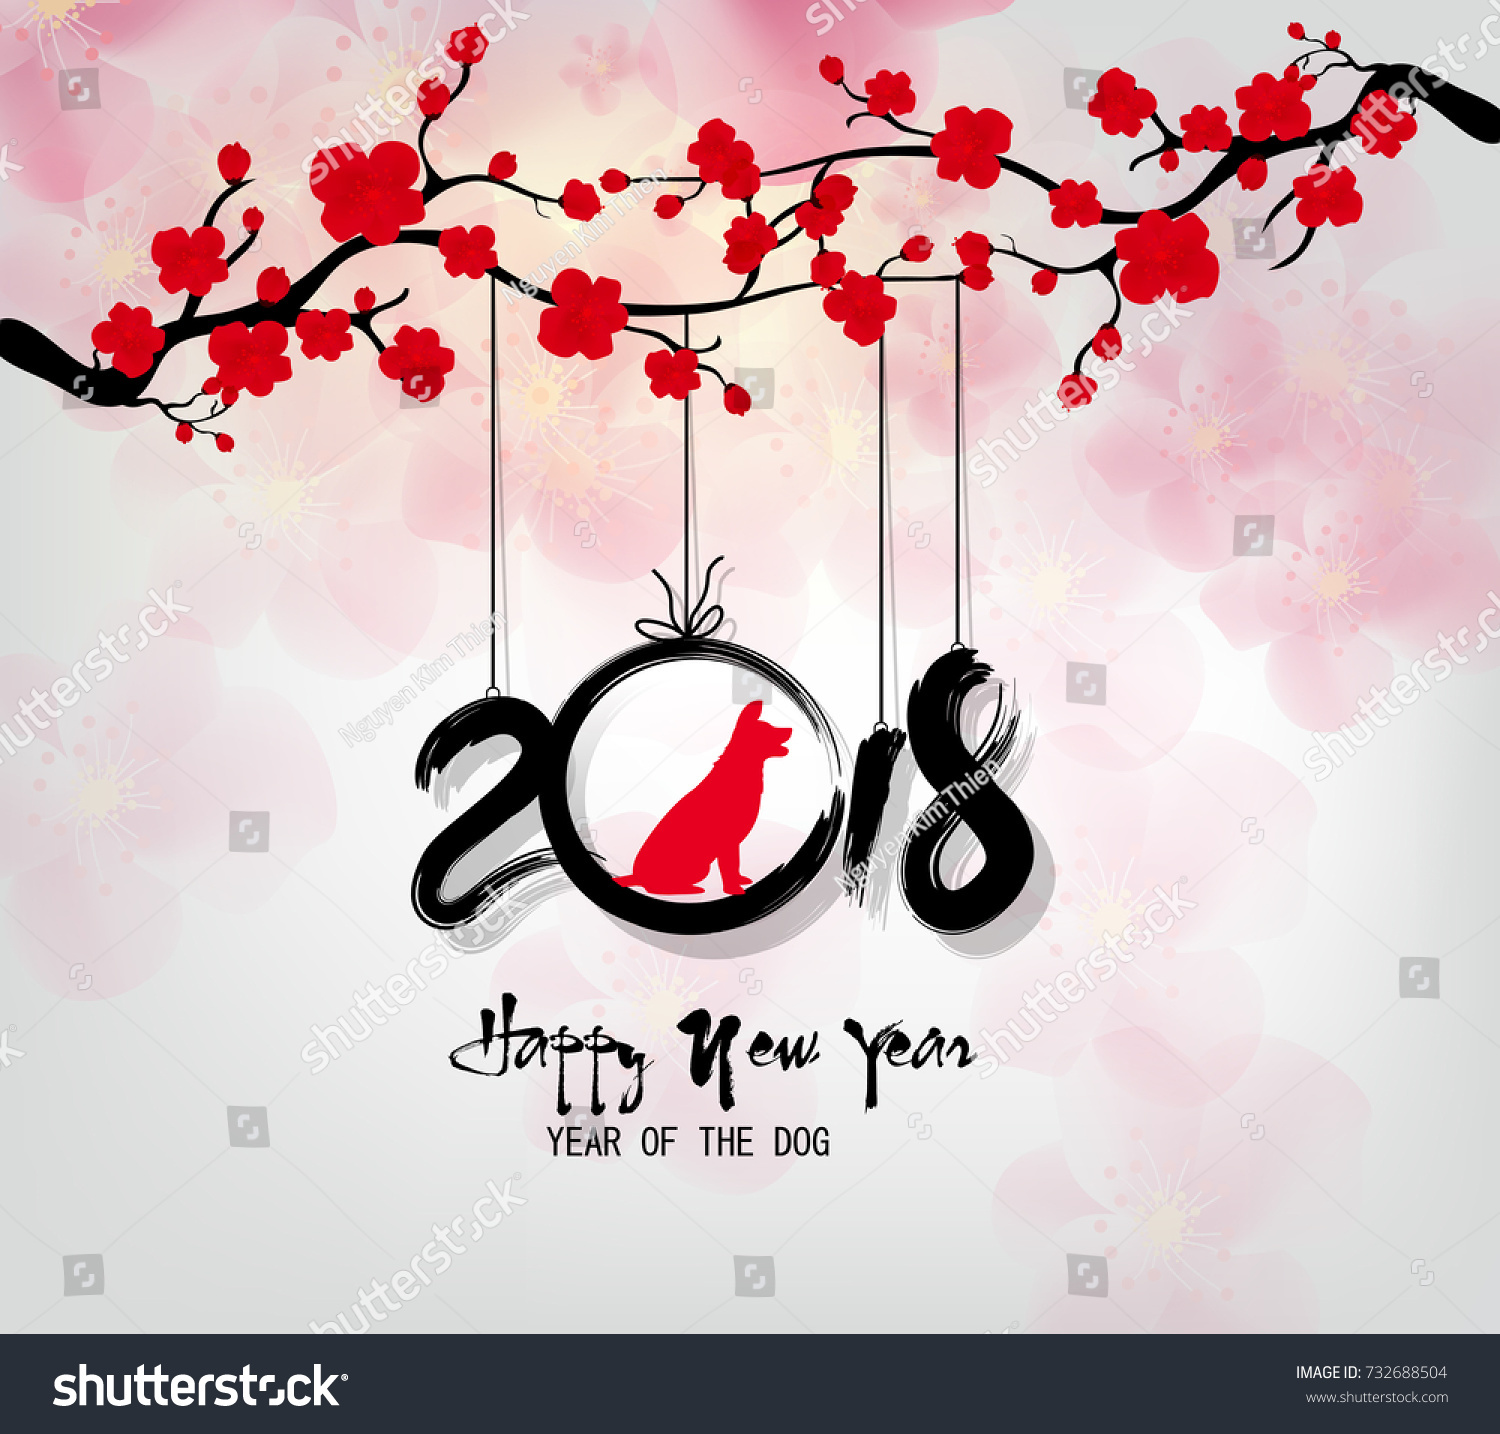 Happy New Year 2018 Greeting Card Stock Vector 2018 732688504